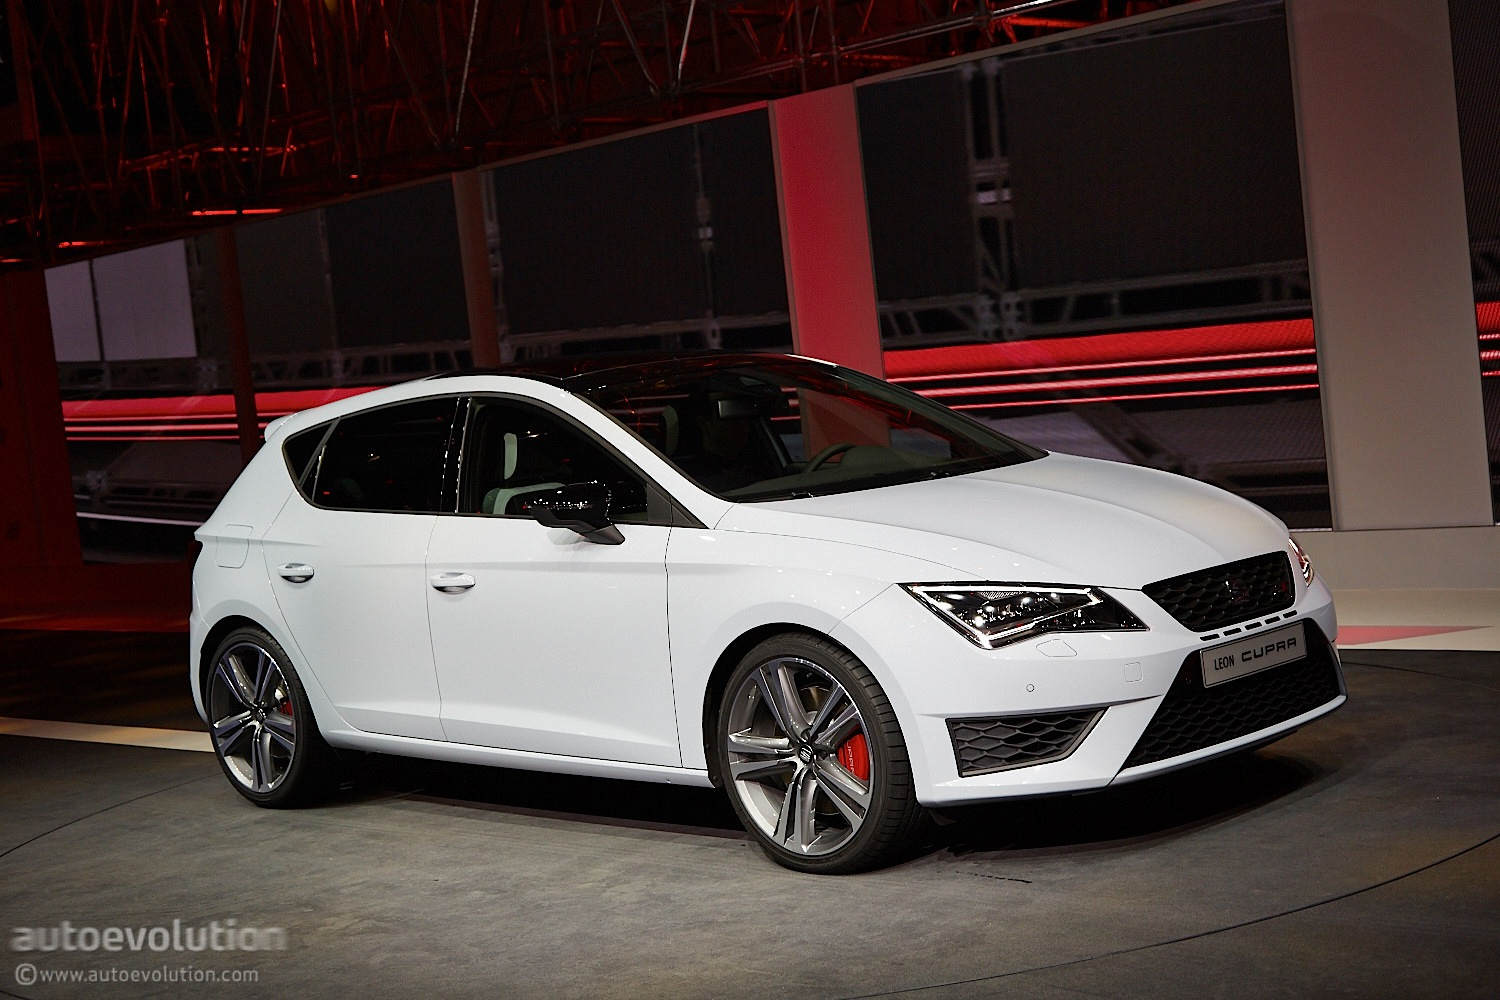 2014 SEAT Leon Cupra Is the Hottest of the Hot Hatches Live